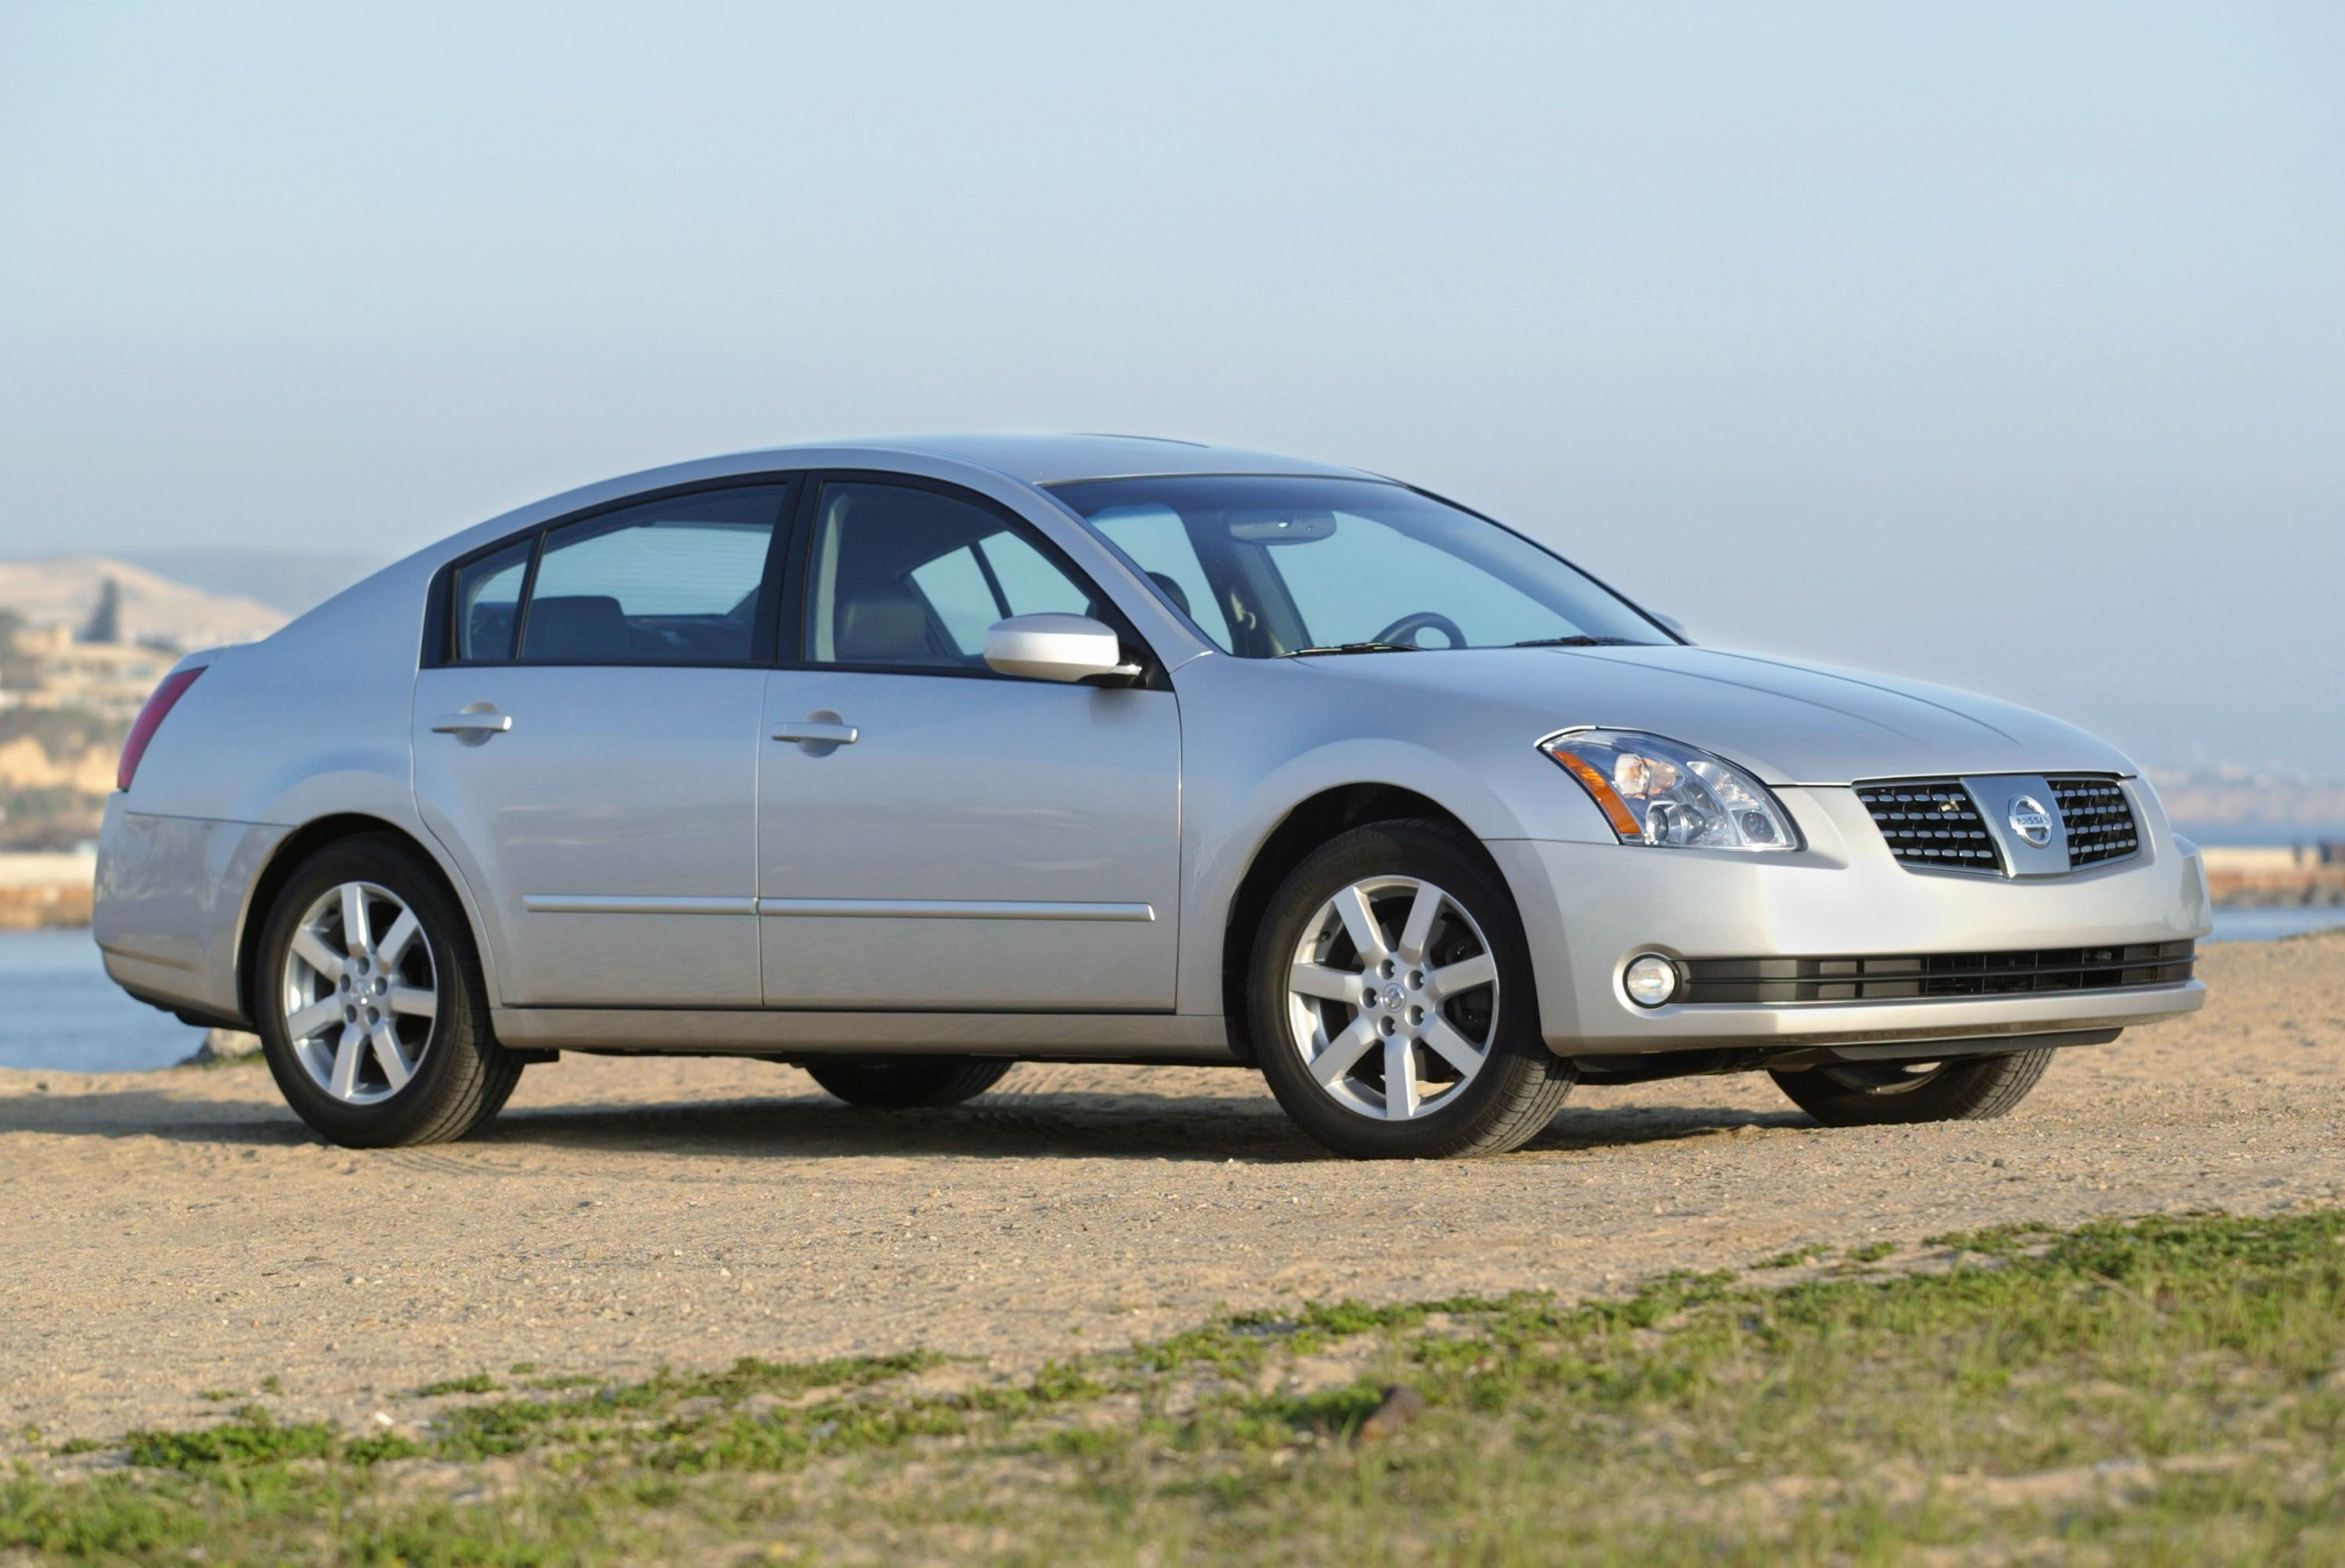 wheels maxima al se nissan in deals veh moulton on